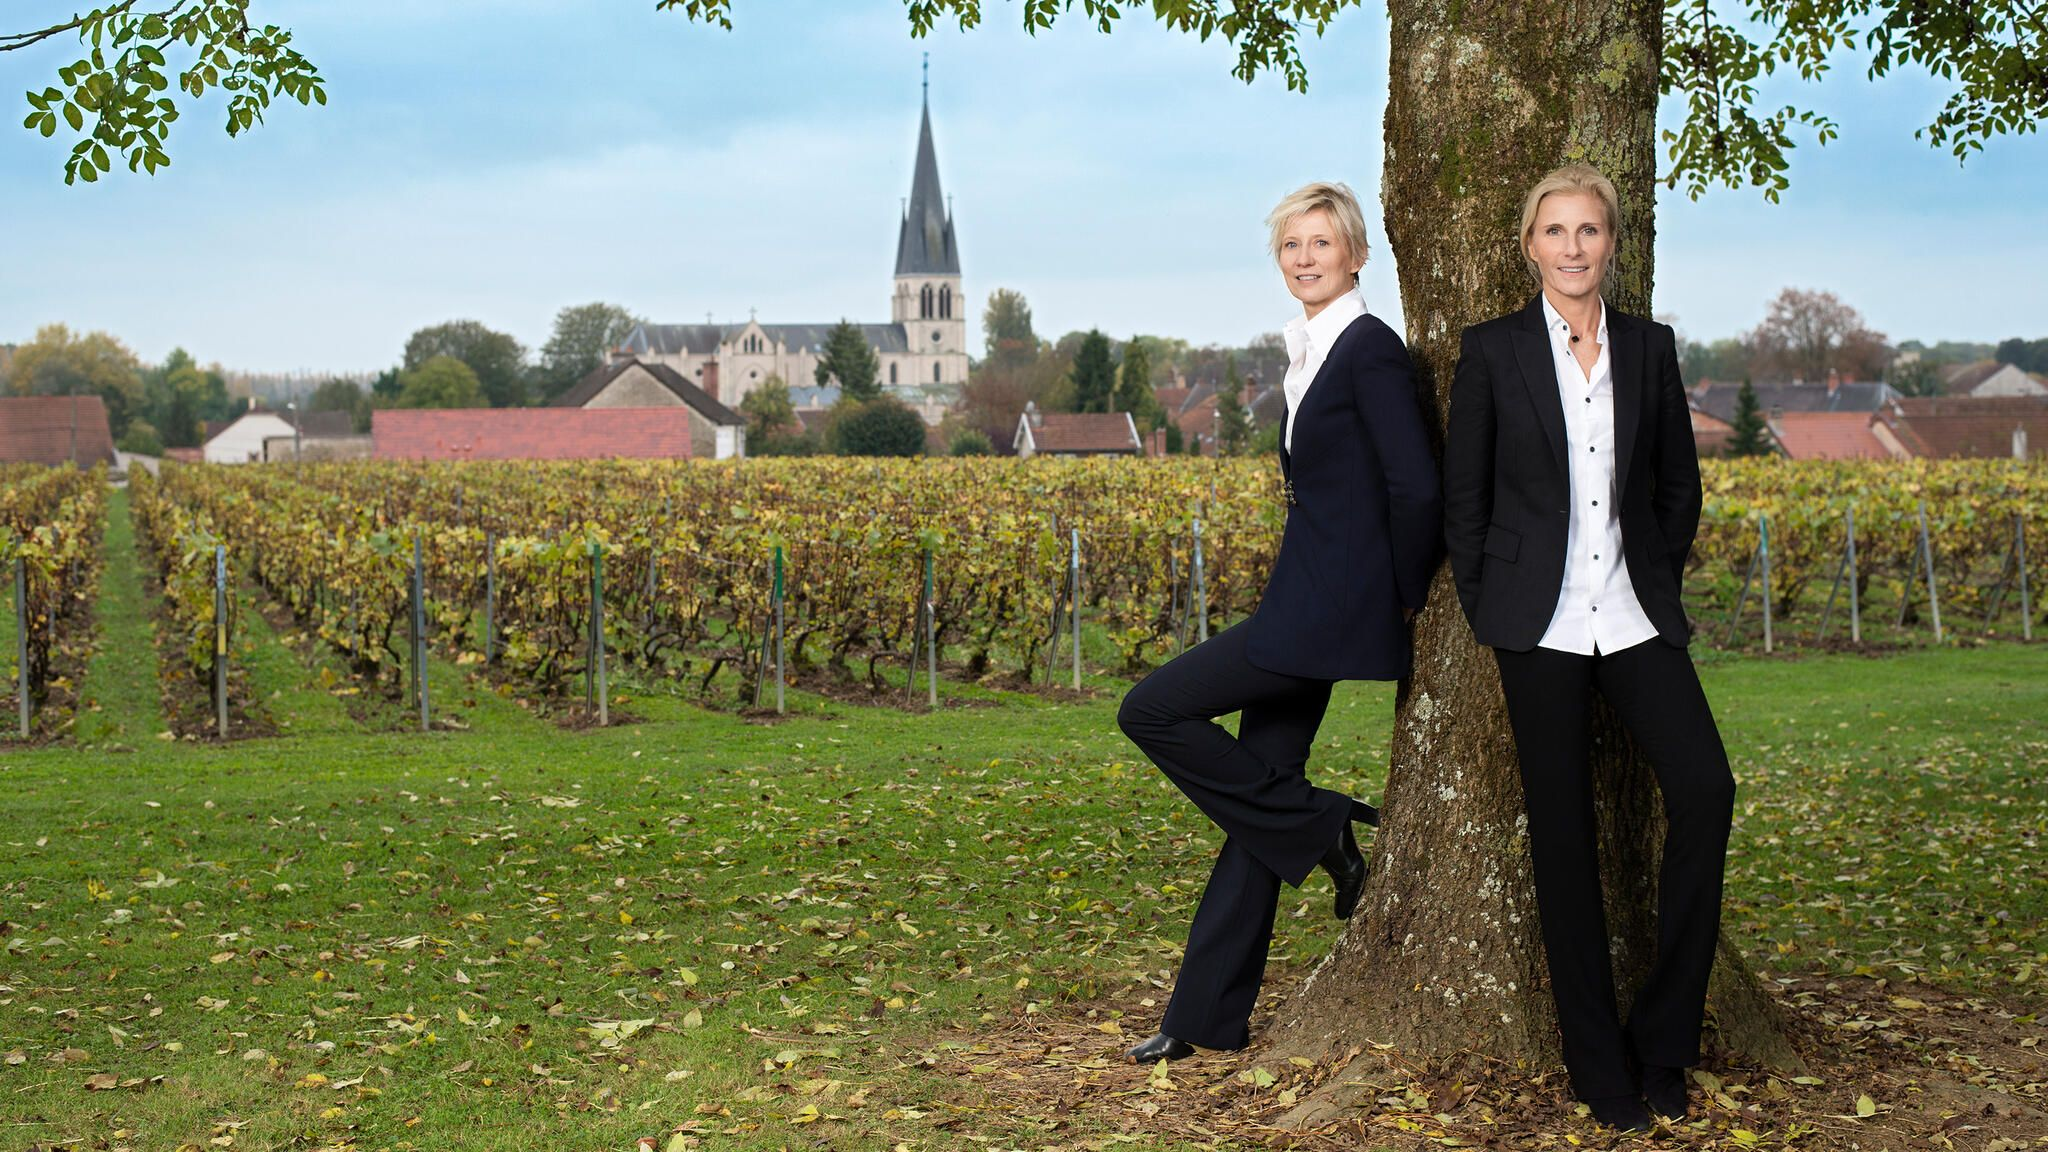 TOURS-SUR-MARNE, MARNE, FRANCE - OCTOBER 28 : Alexandra Pereyre de Nonancourt and her sister Stephanie Meneux de Nonancourt owners of Champagne Laurent-Perrier pose in their vineyard in Tours-Sur-Marne on October 28, 2014. (Photo by Emmanuele Scorcelletti/Paris Match Contour by Getty Images)